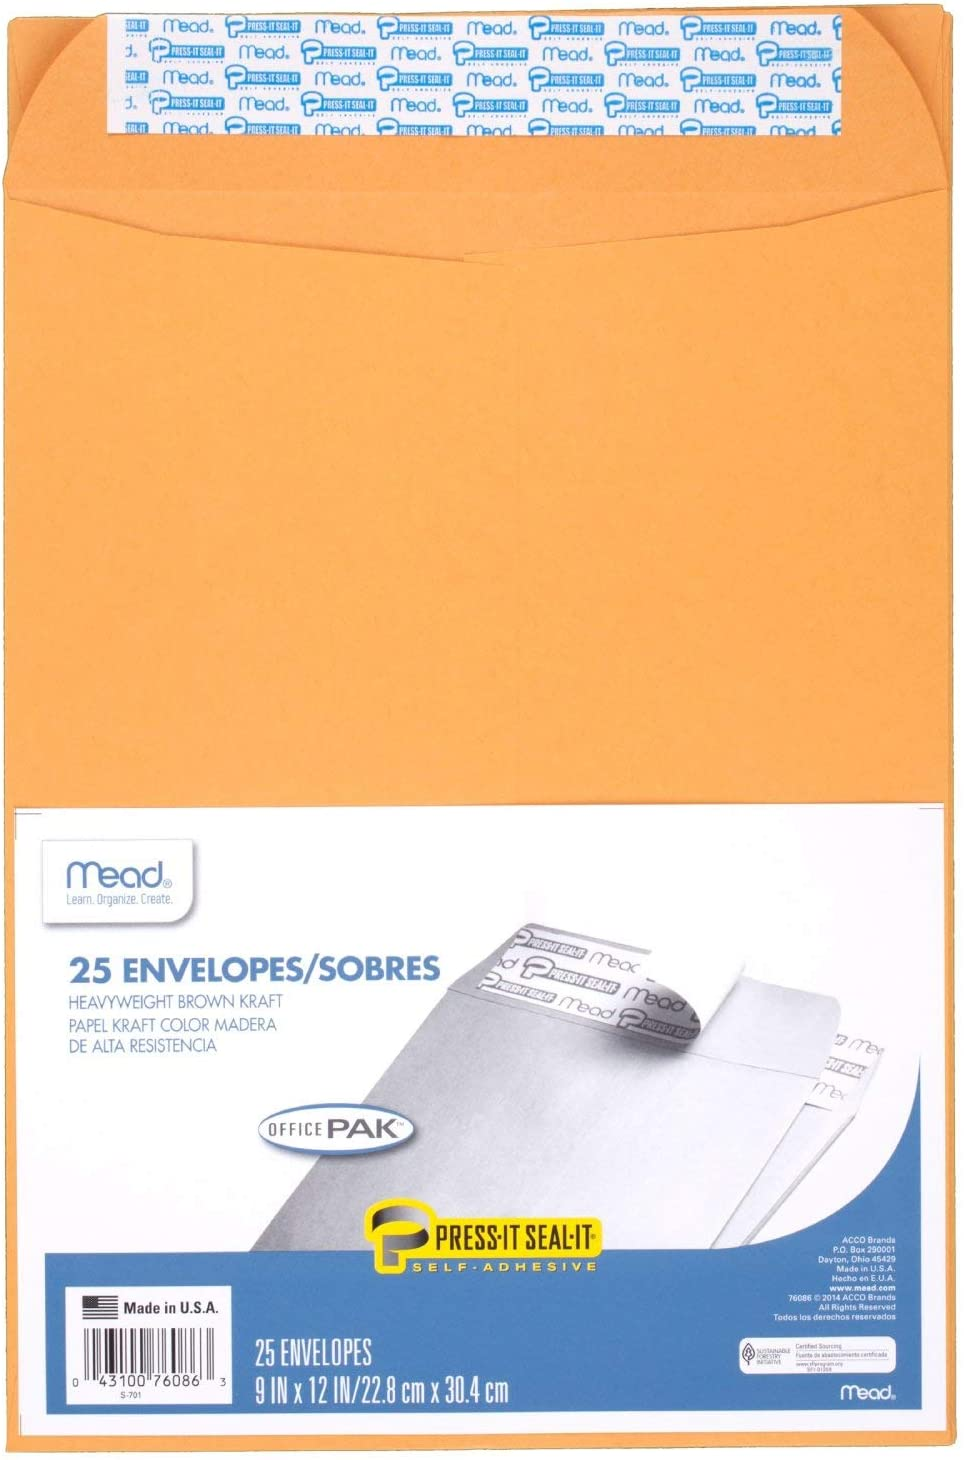 """Mead Envelopes, Press-It Seal-It, 9"""" x 12"""", Self Adhesive, Office Pack, Brown Kraft, 25-Pack (76086) : Large Format Envelopes : Office Products"""